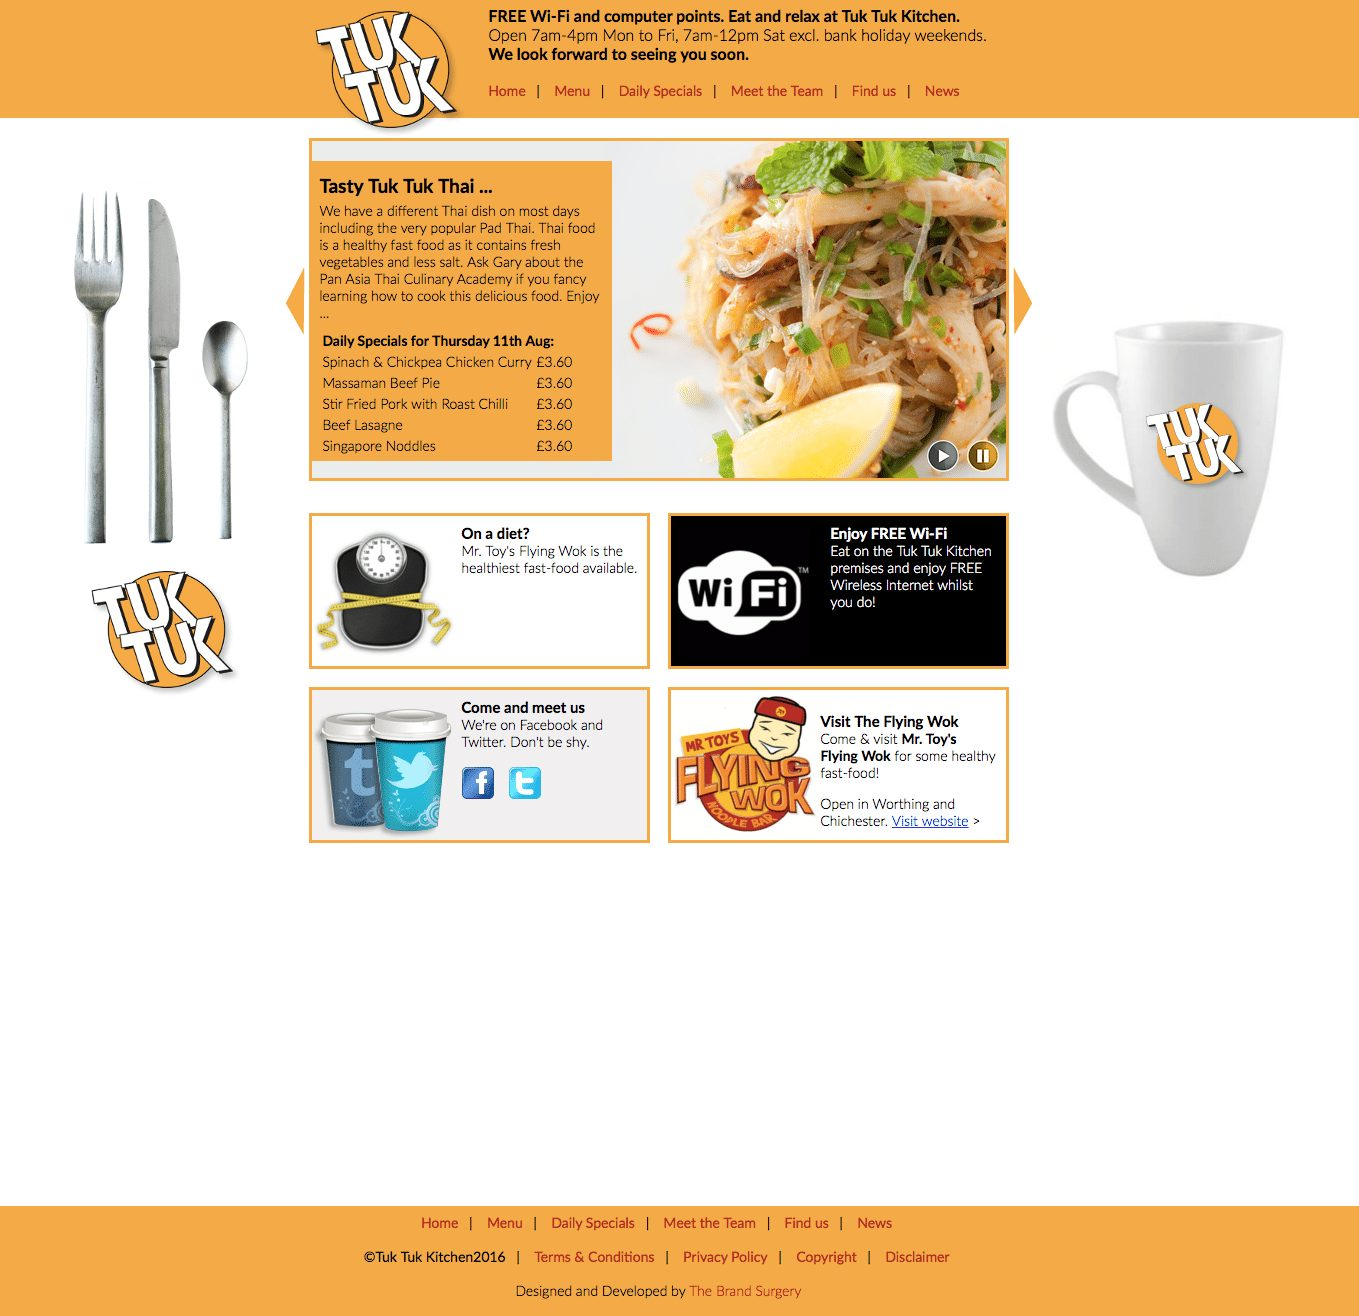 Website design for Tuk Tuk Restaurant